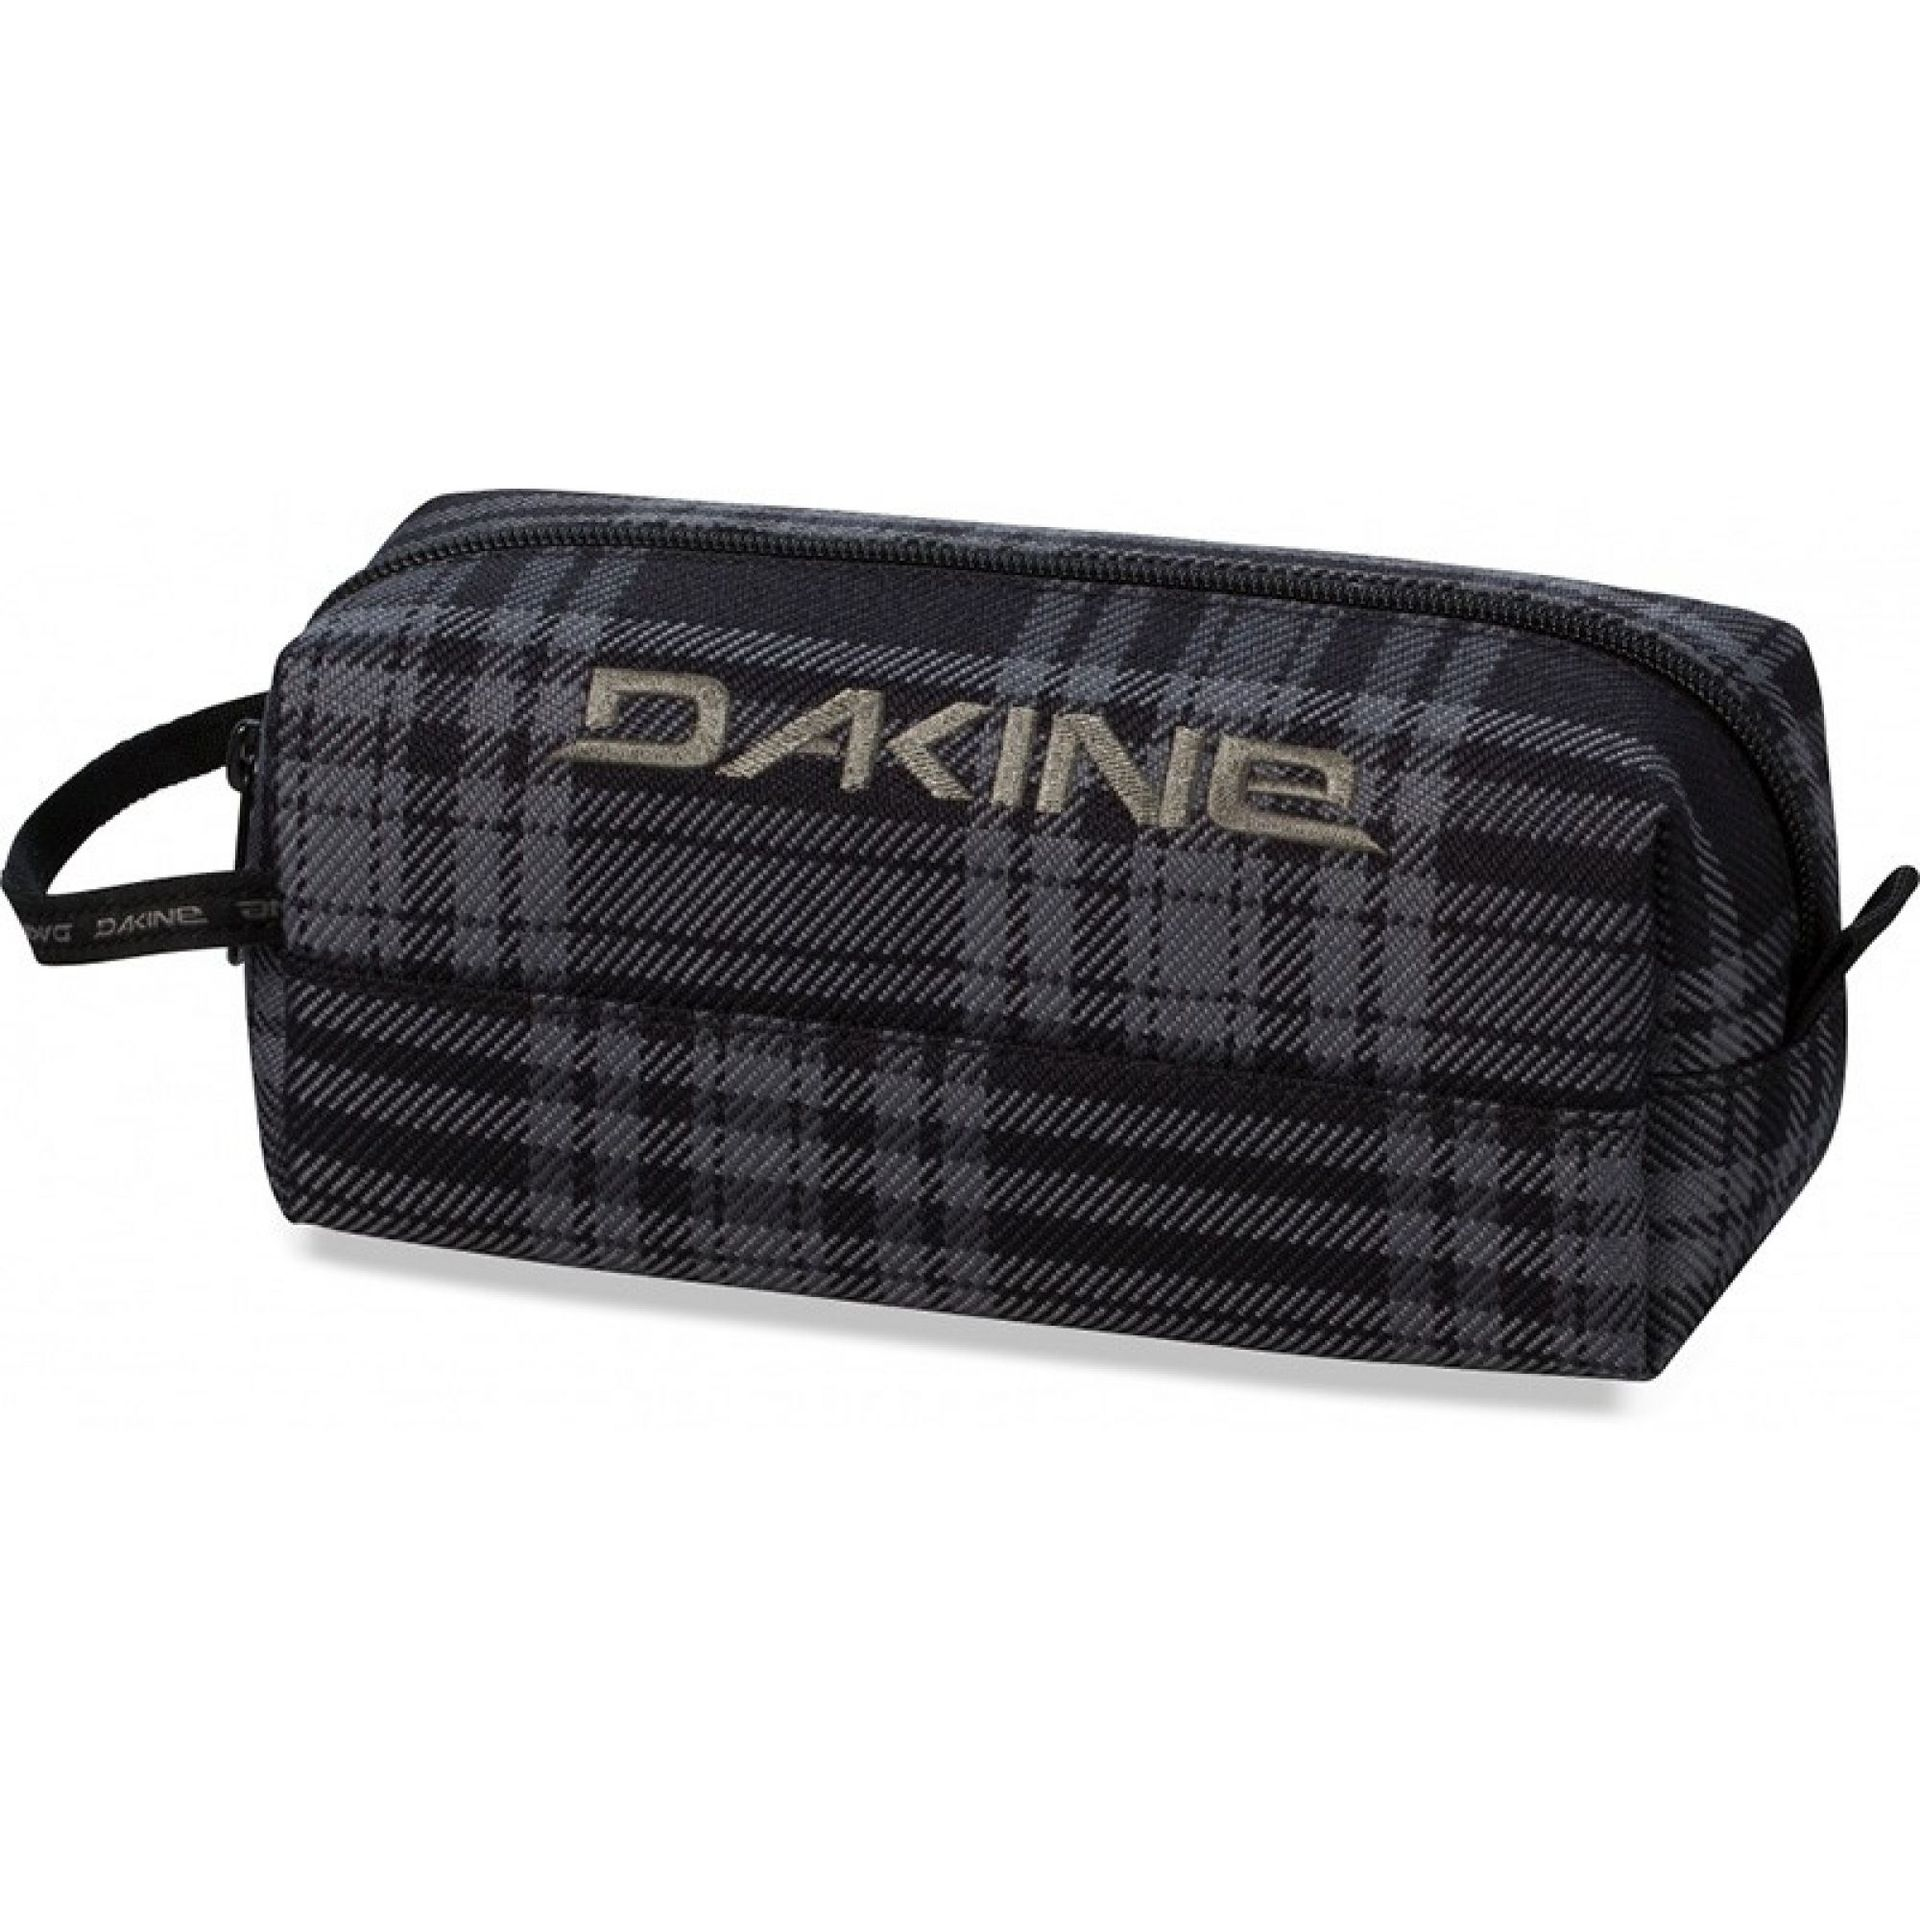 Piórnik Dakine Accessory Case columbia